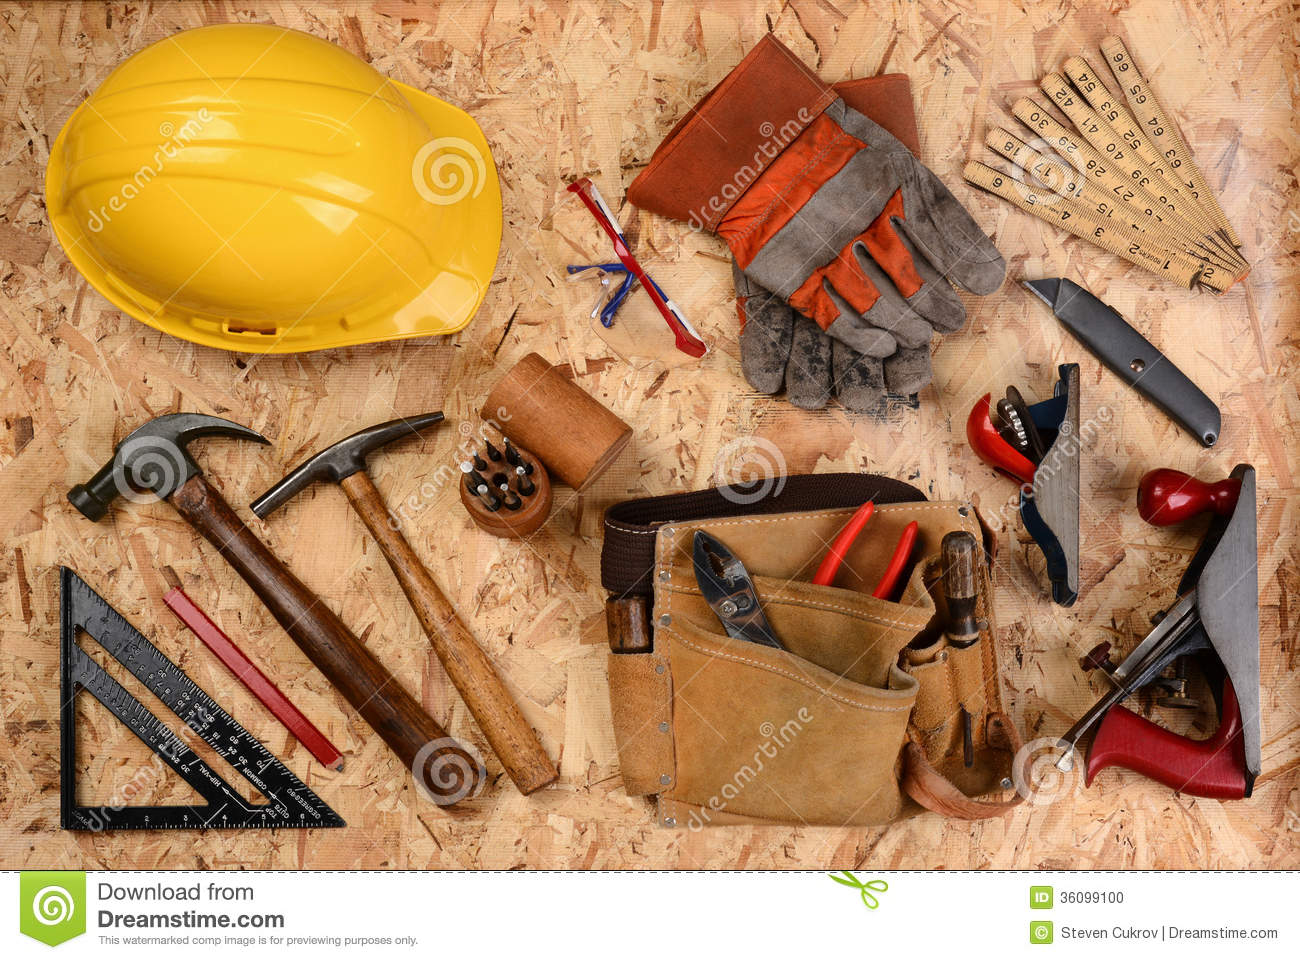 Overhead View Of Construction Equipment And Tools Laid Out On A Sheet